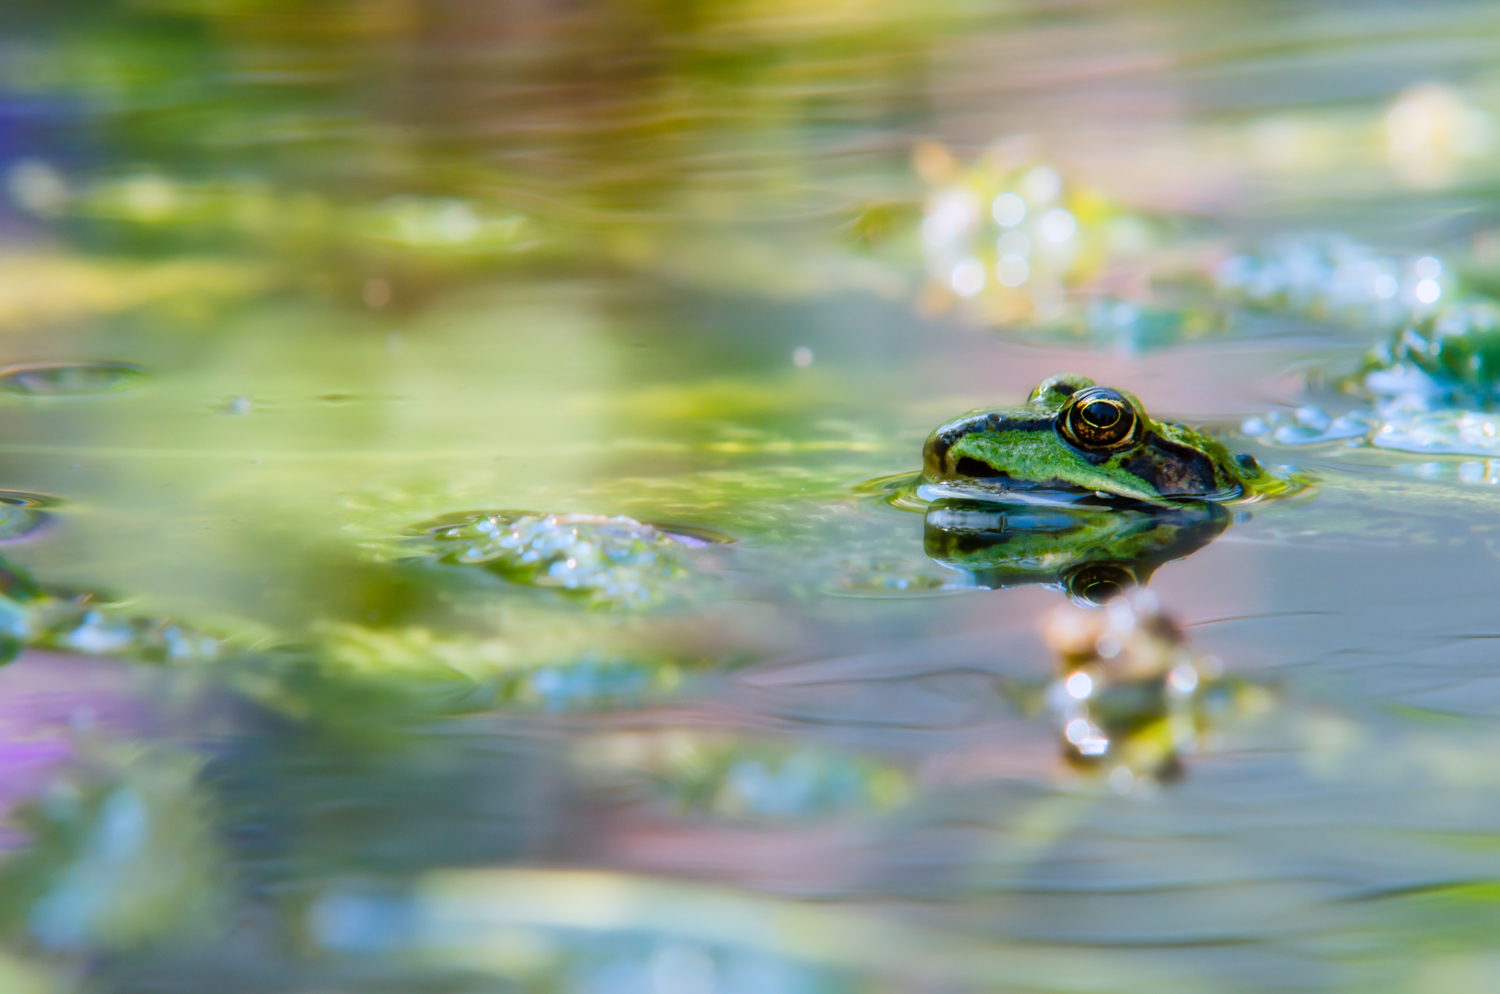 Frog in the pond reflecting beautiful colors of the flowers on the far bank. Exposure: 1/200 sec @ f/11 ISO 200, 200mm